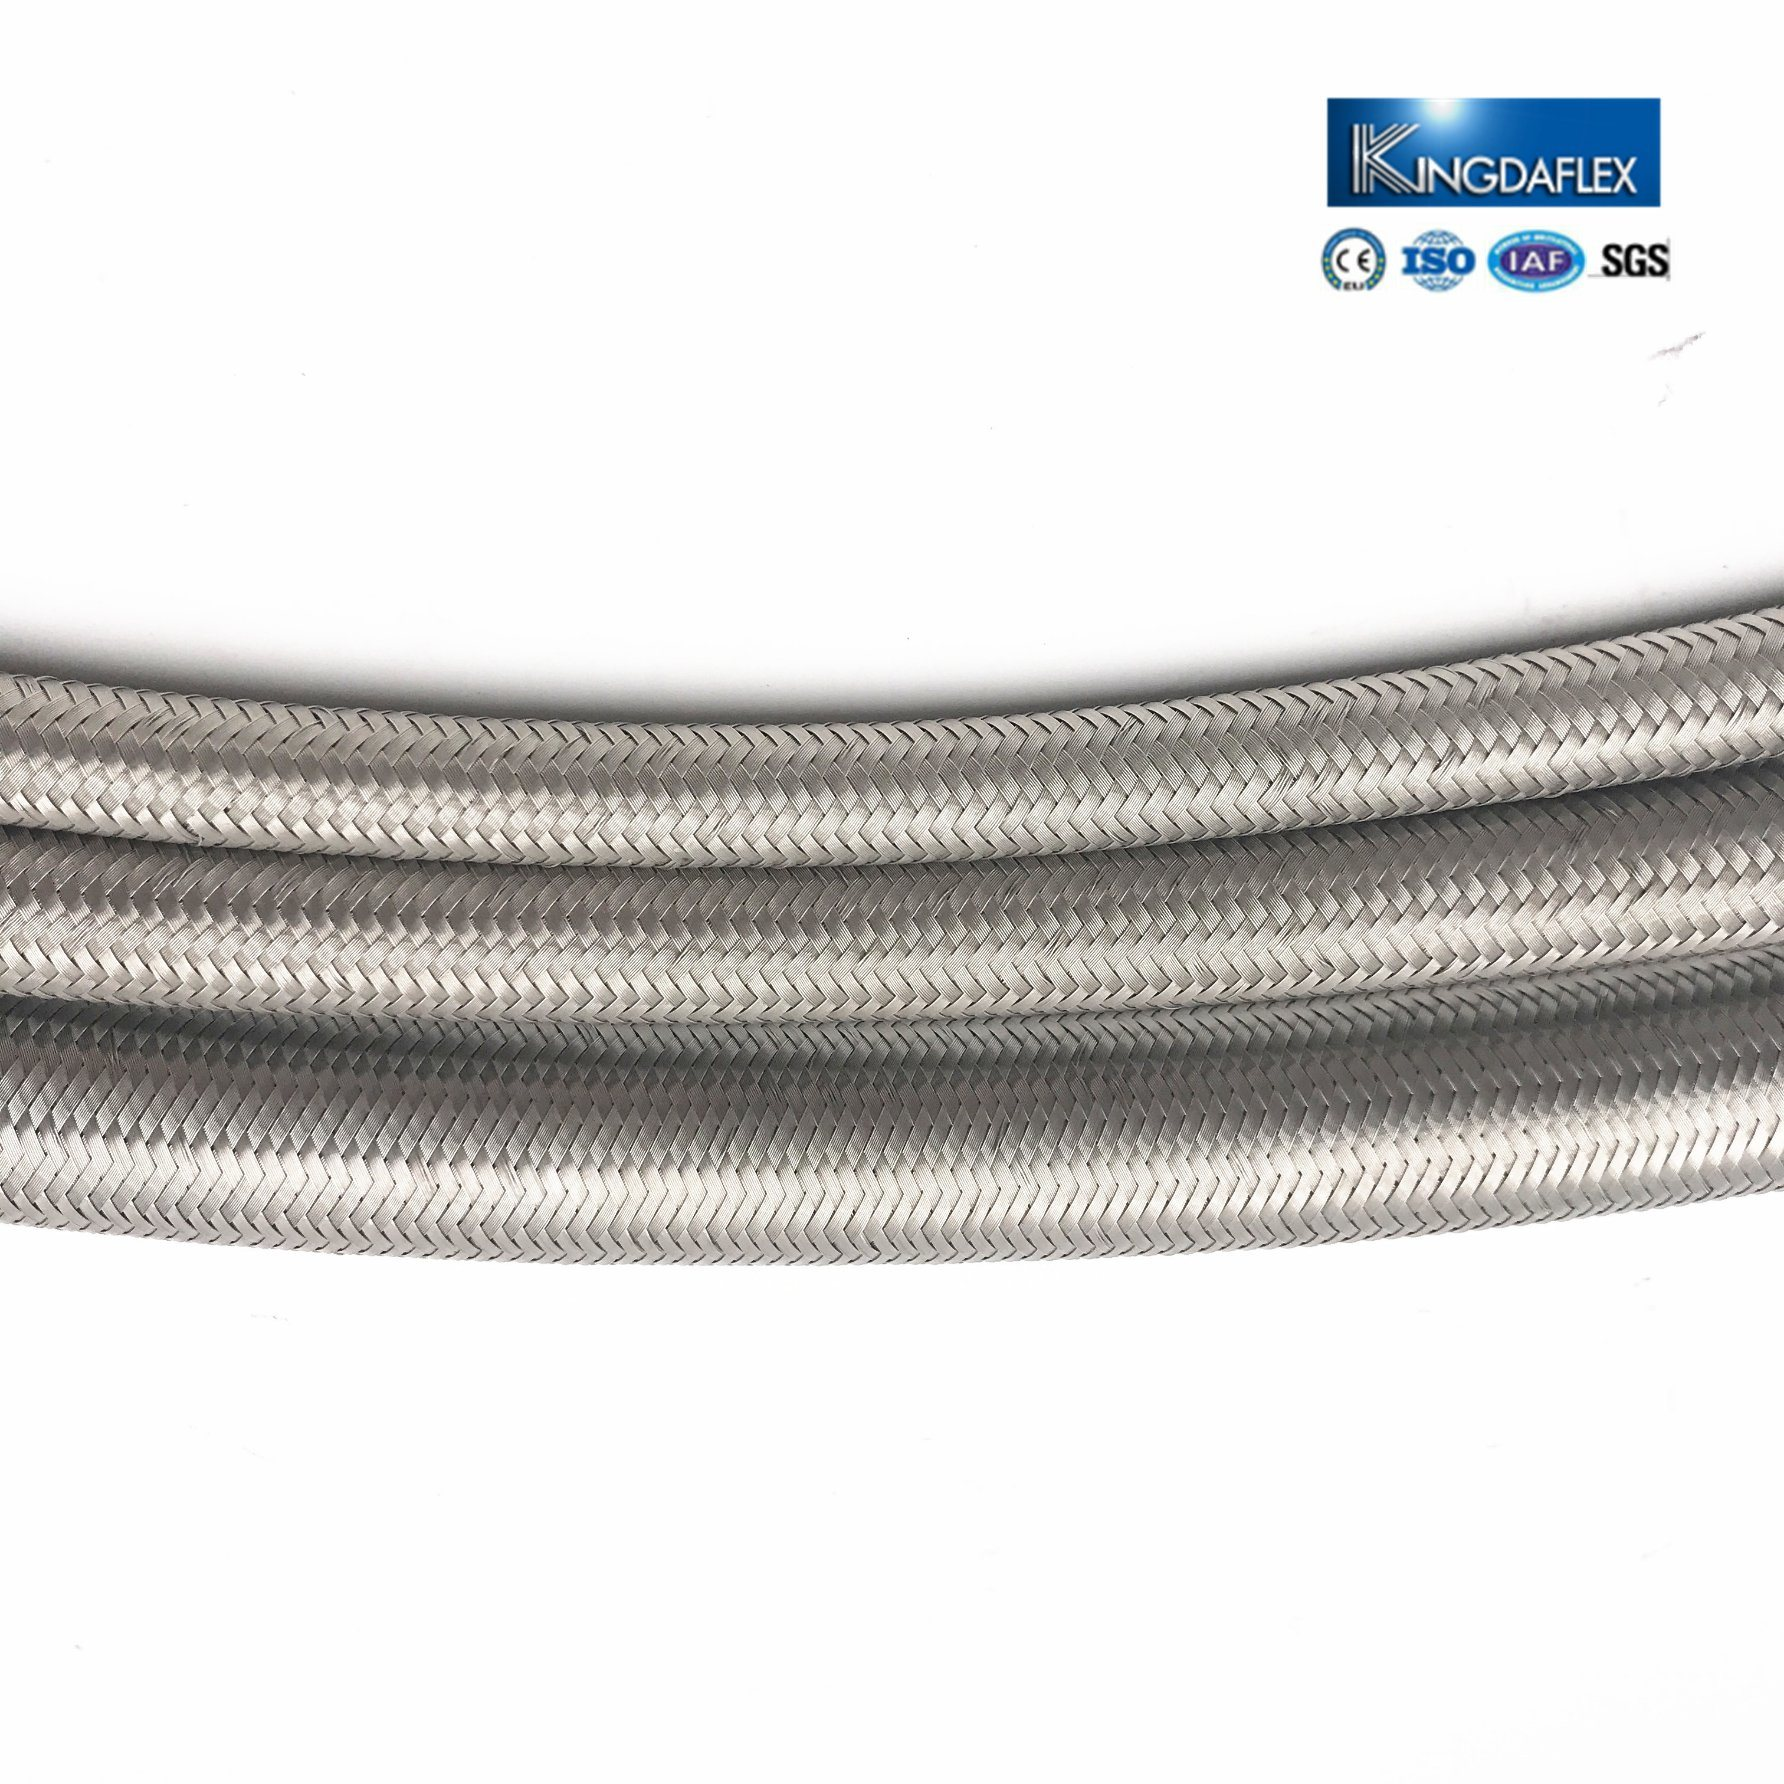 China High Temperature PTFE Lined Stainless Steel 304 Wire Braided ...